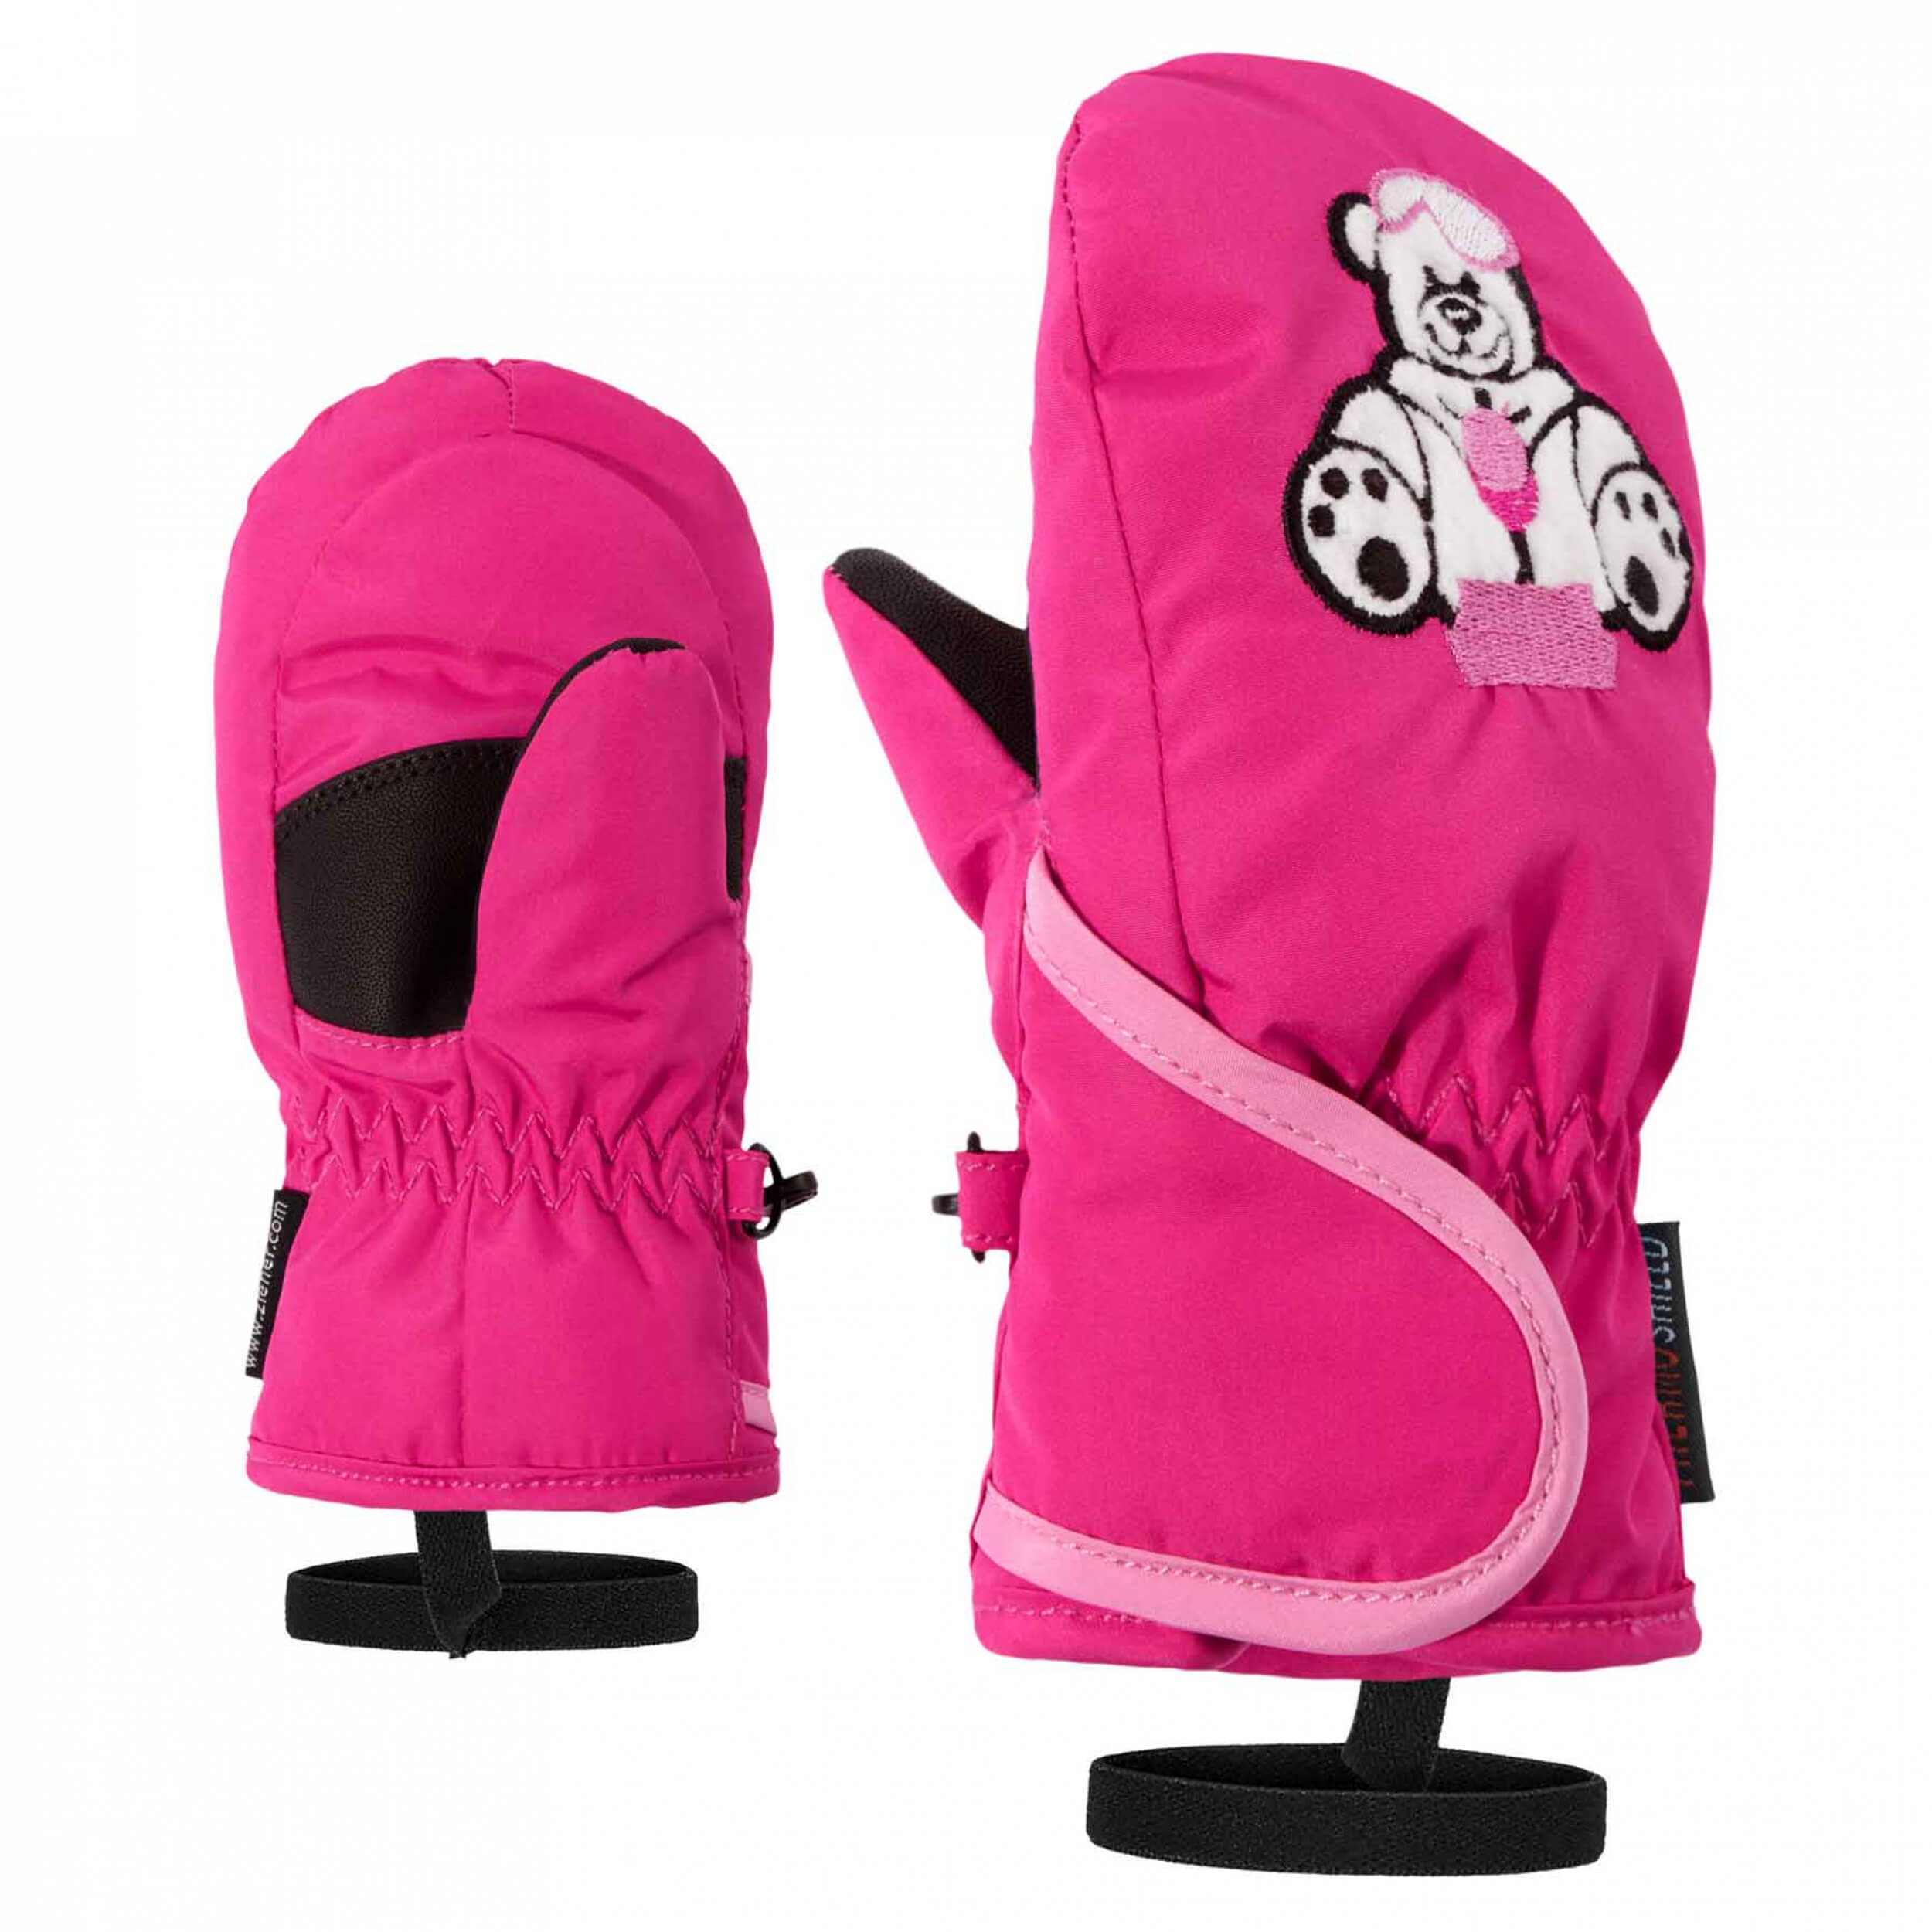 ZIENER Kinder Mini Fäustlinge AQUASHIELD Lollo pink 766